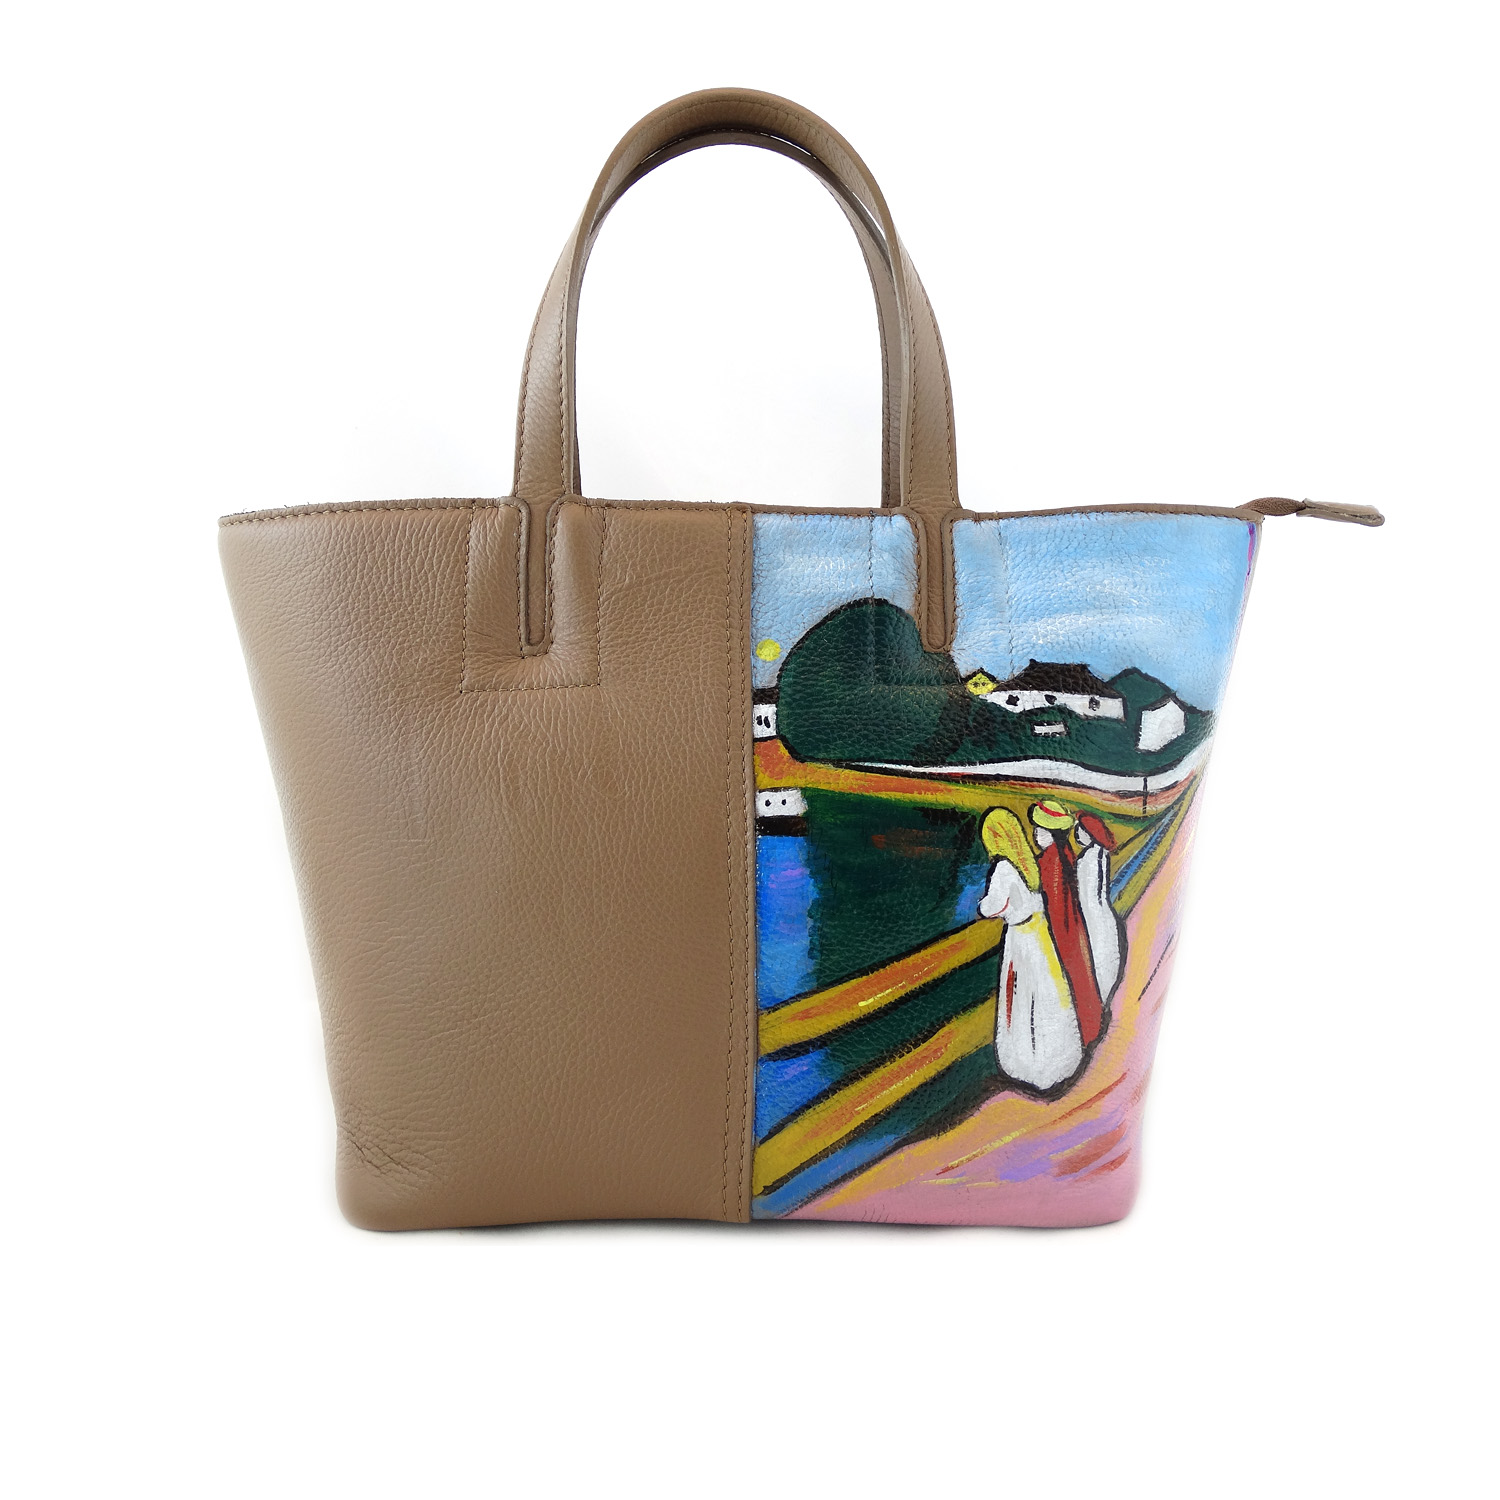 Hand painted bag - Girls on the bridge by Munch